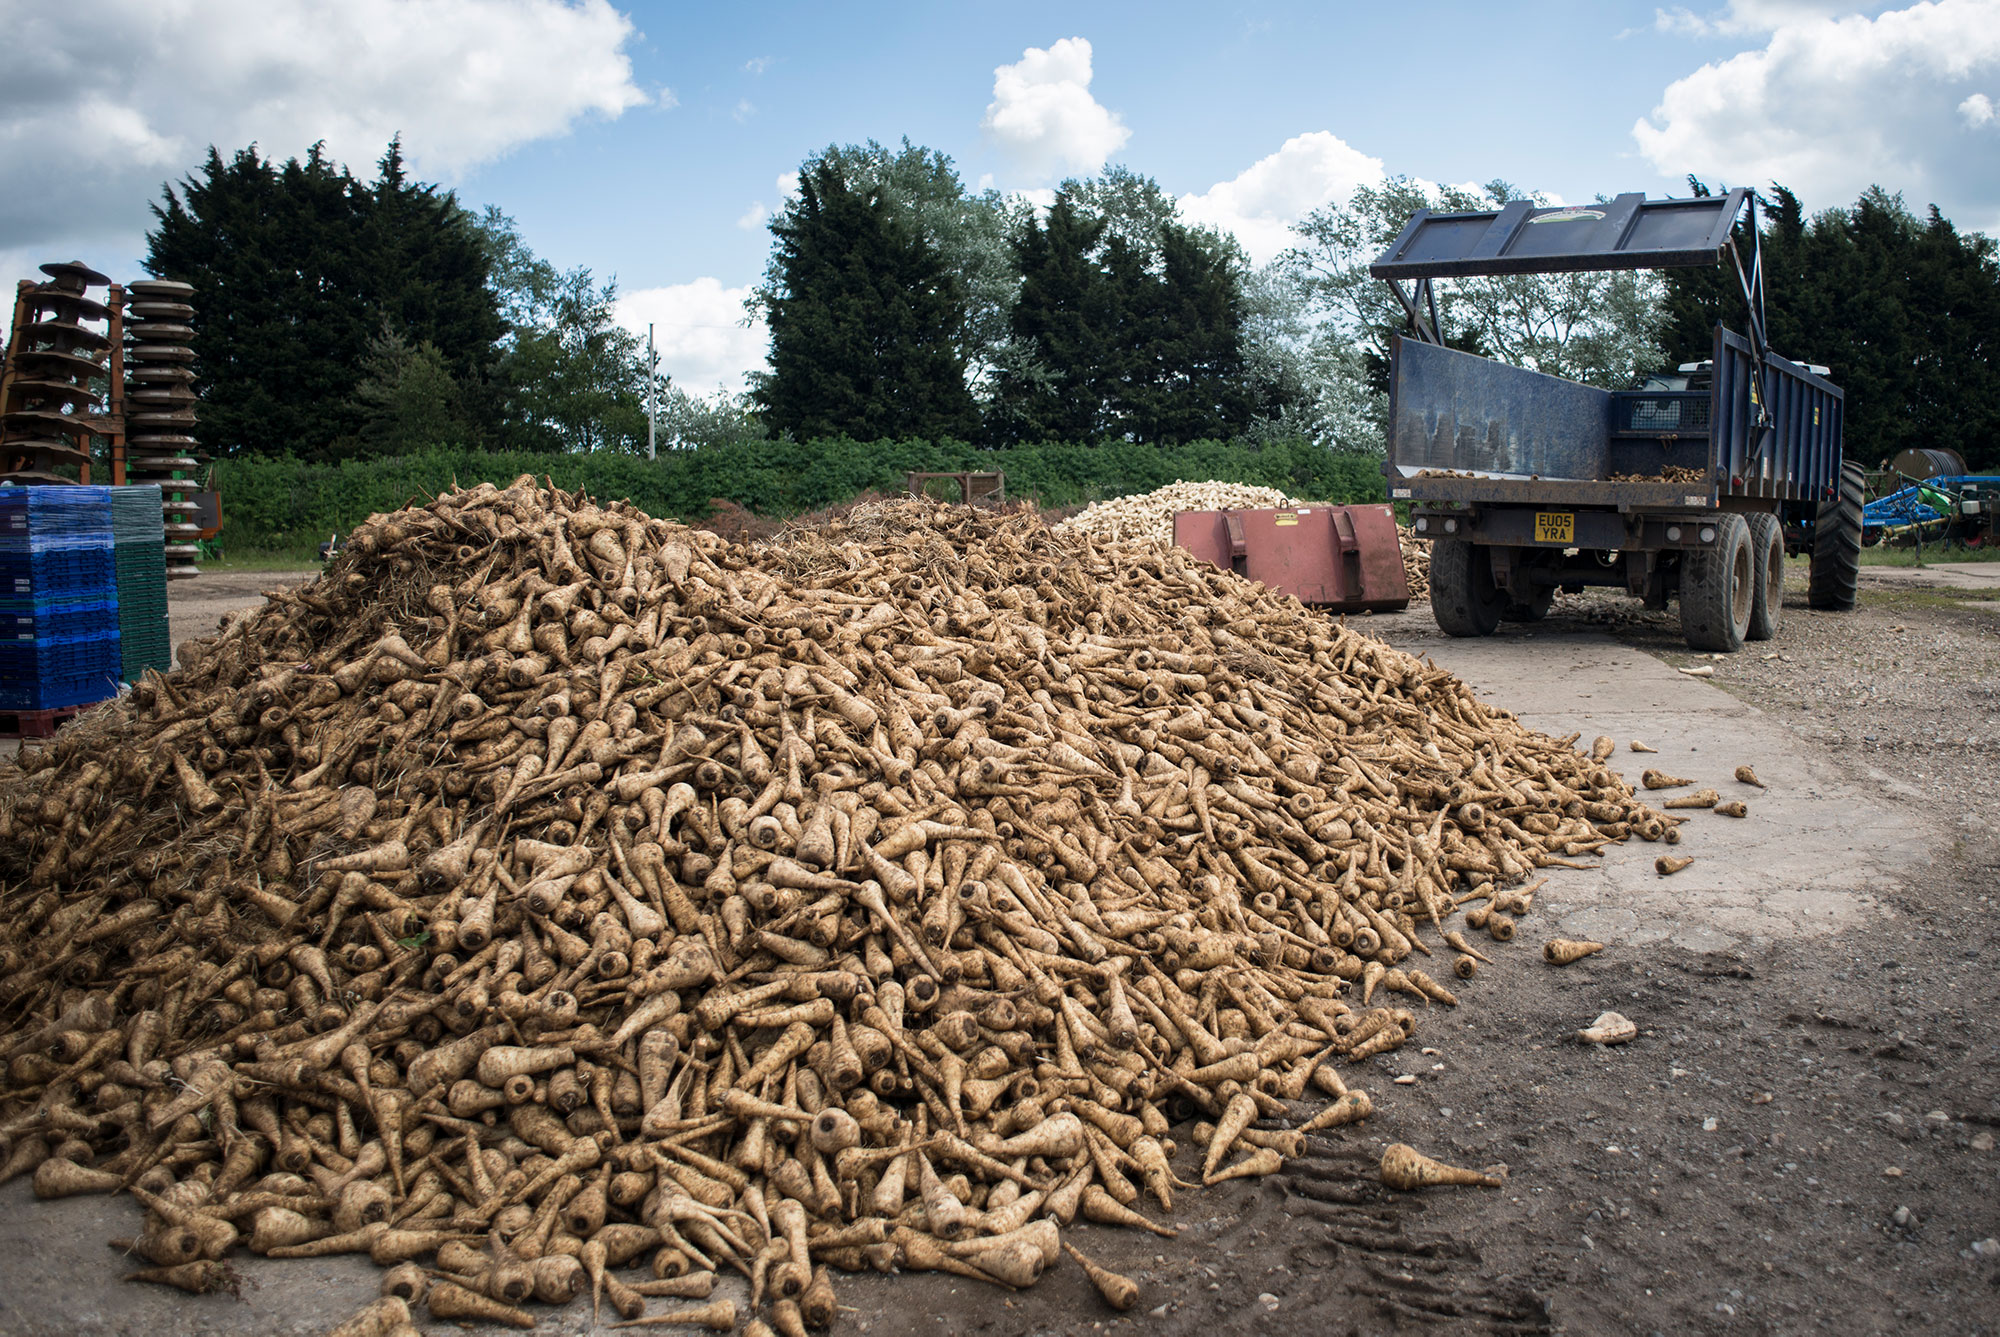 A 2-tonne pile of parsnips that were going to be left to go to waste